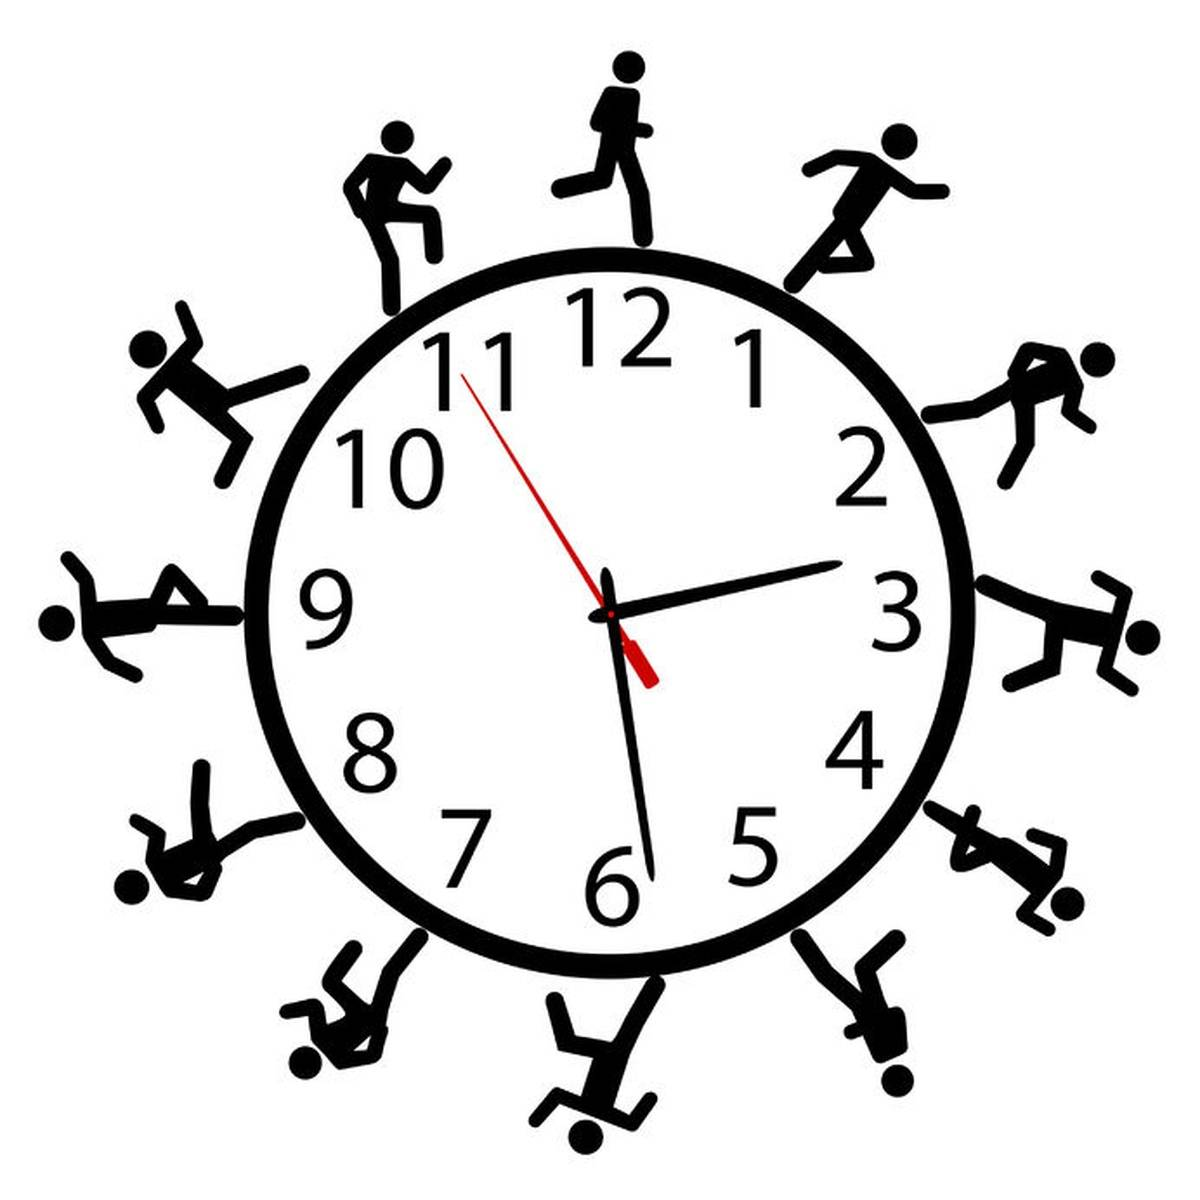 Stick figure running around a ticking clock